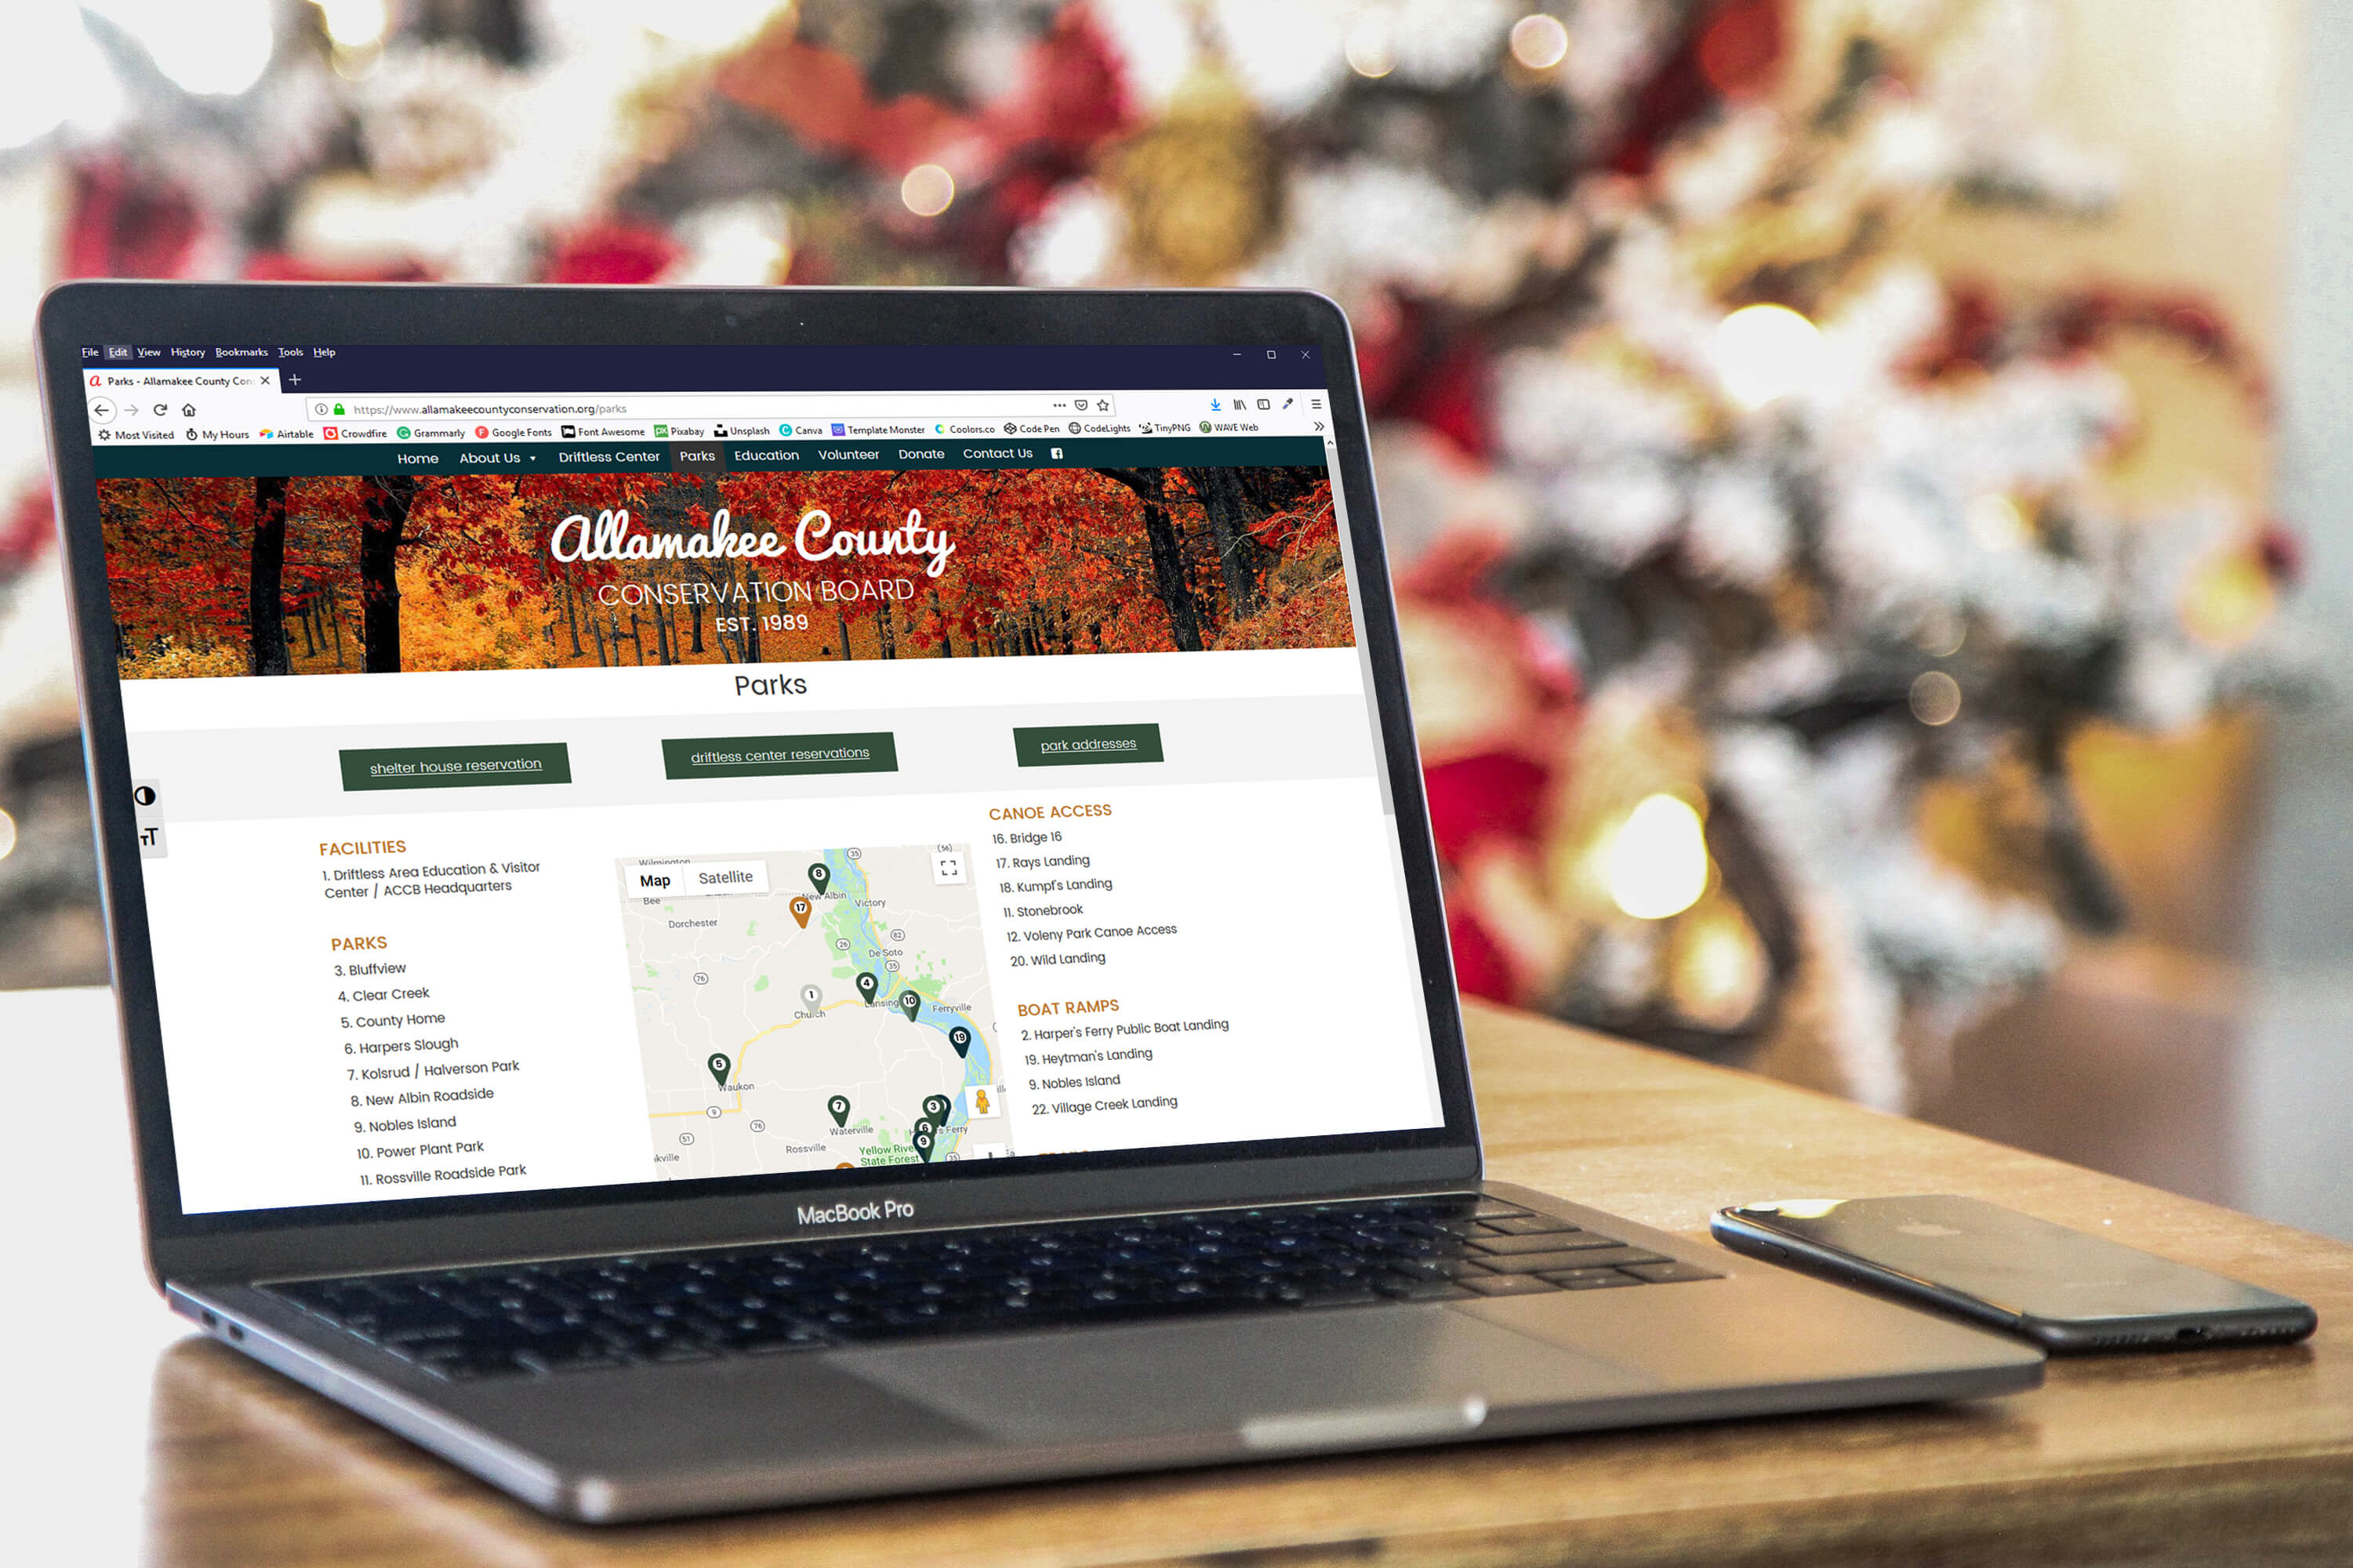 Allamakee County Conservation Board's website on laptop